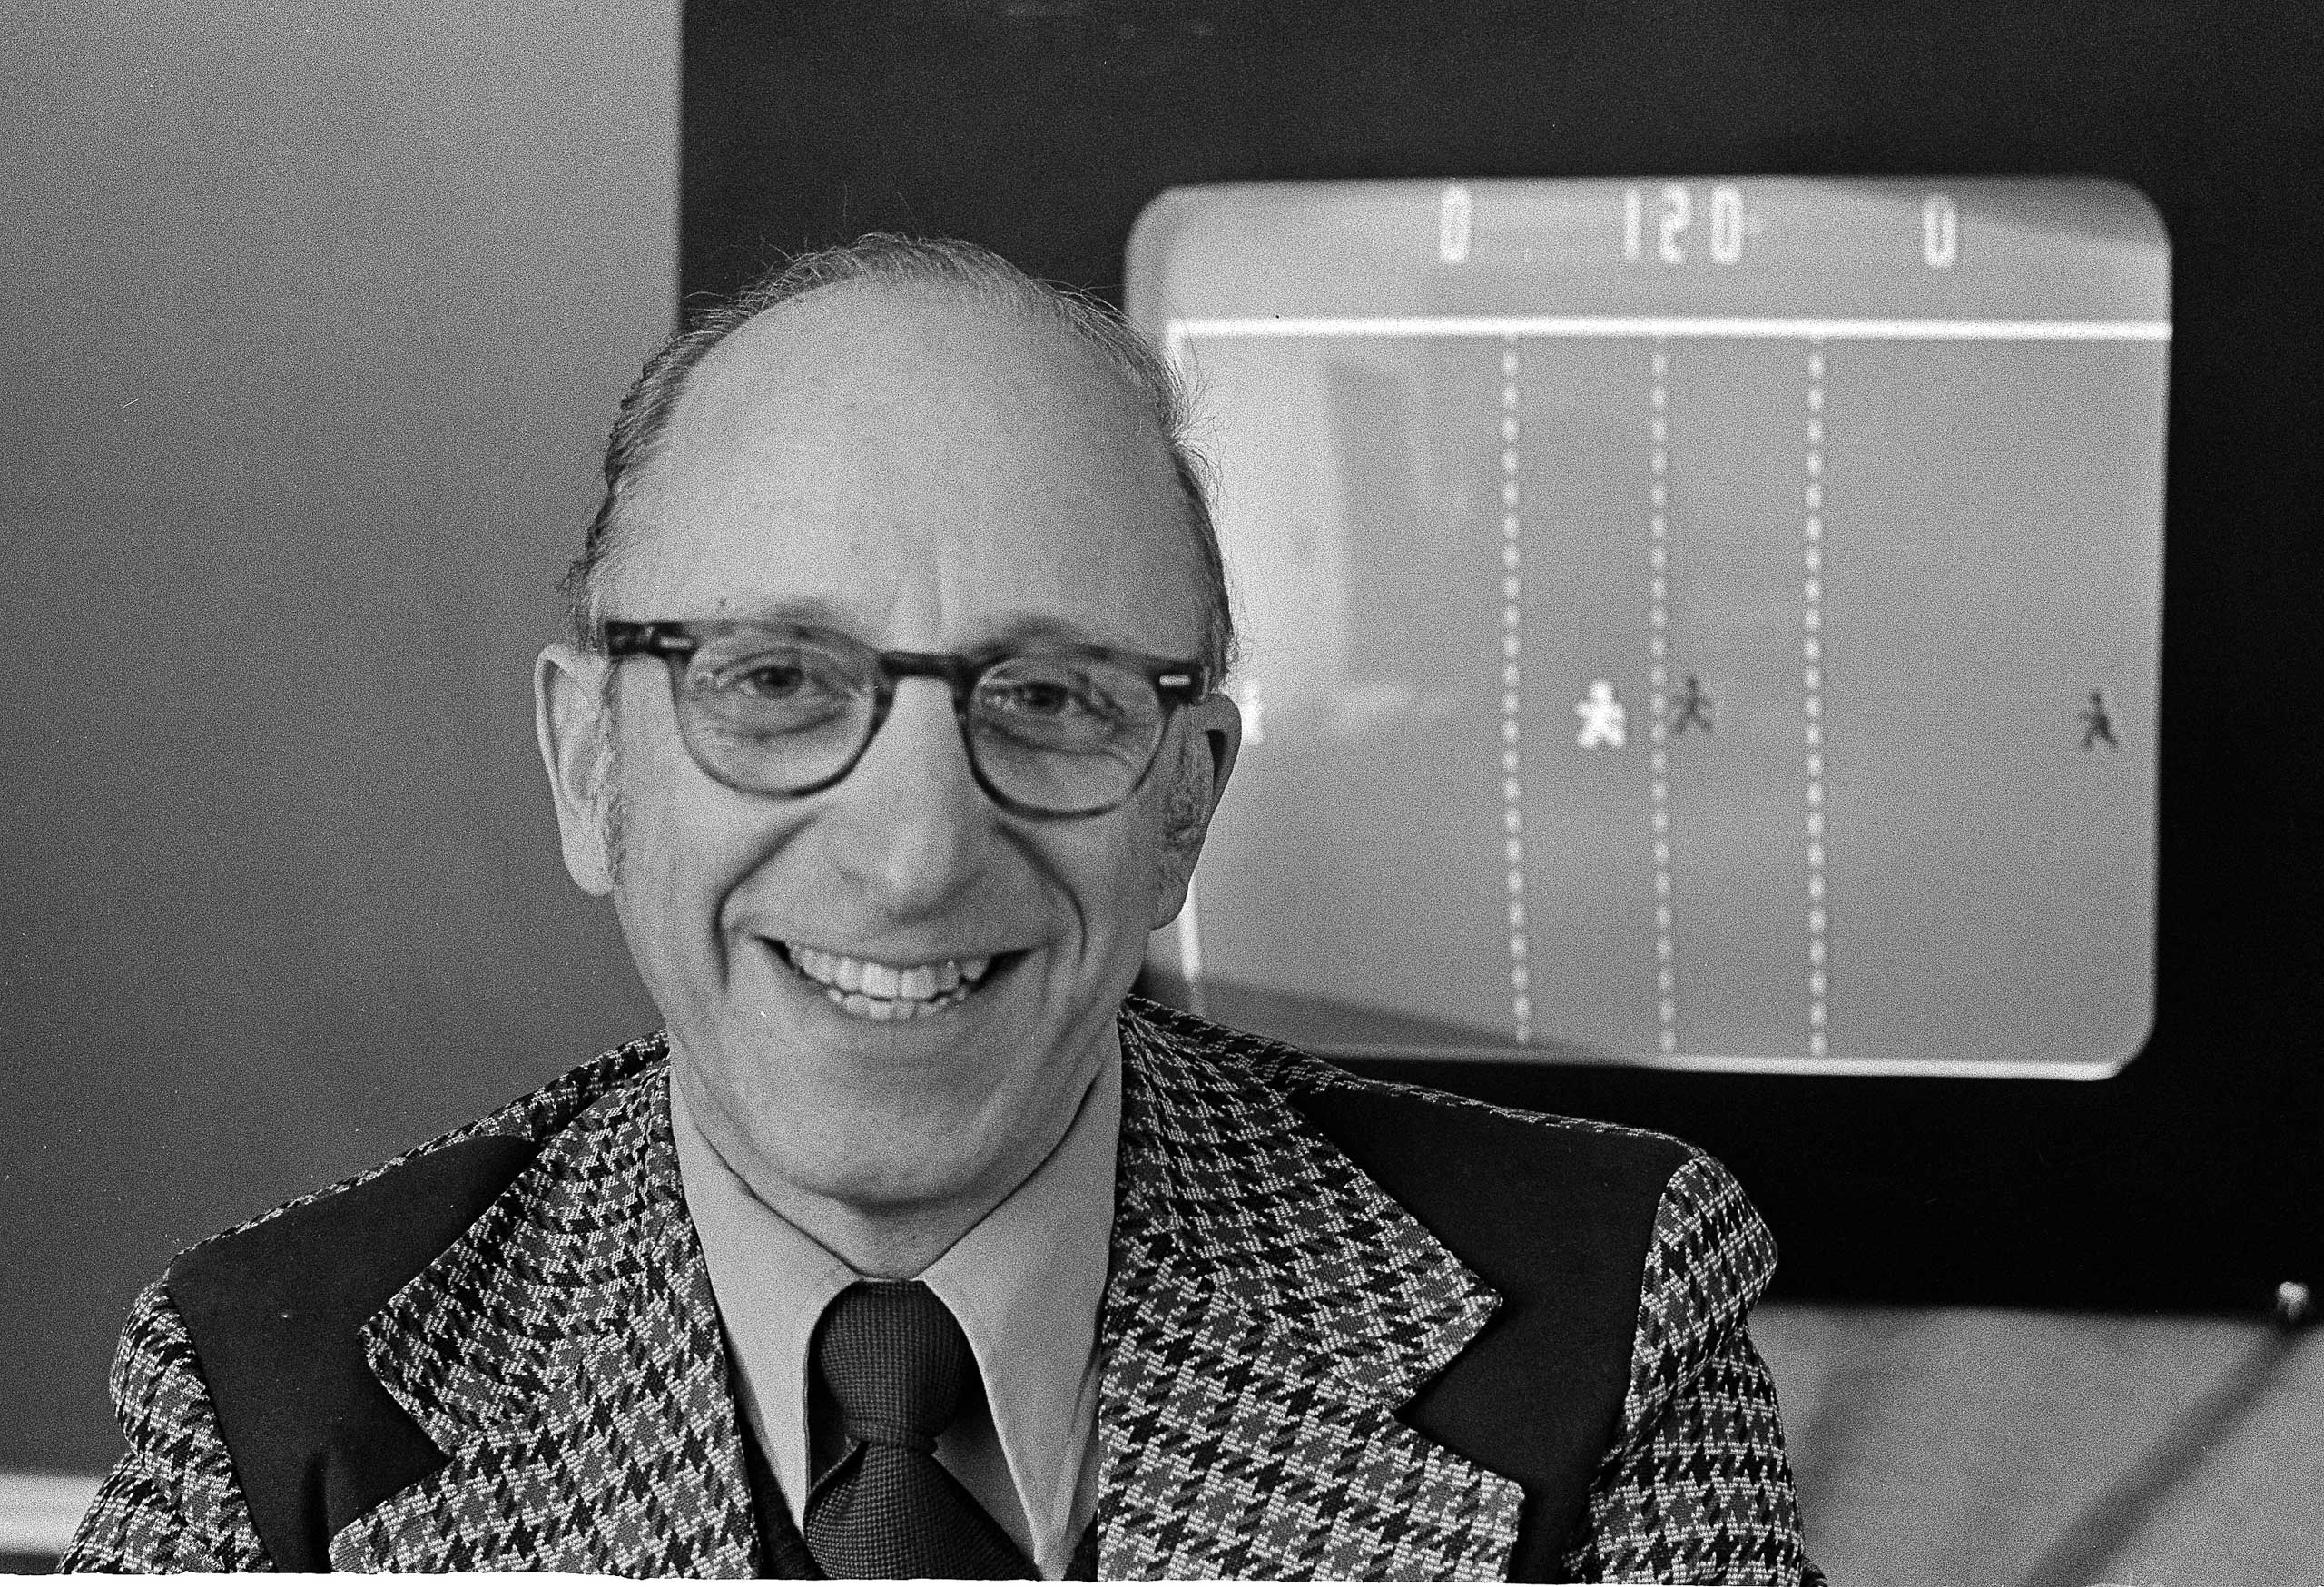 Ralph Baer an engineer for Sanders Associates, Inc., of Nashua, N.H. watches his TV hockey game on Feb. 3, 1977.